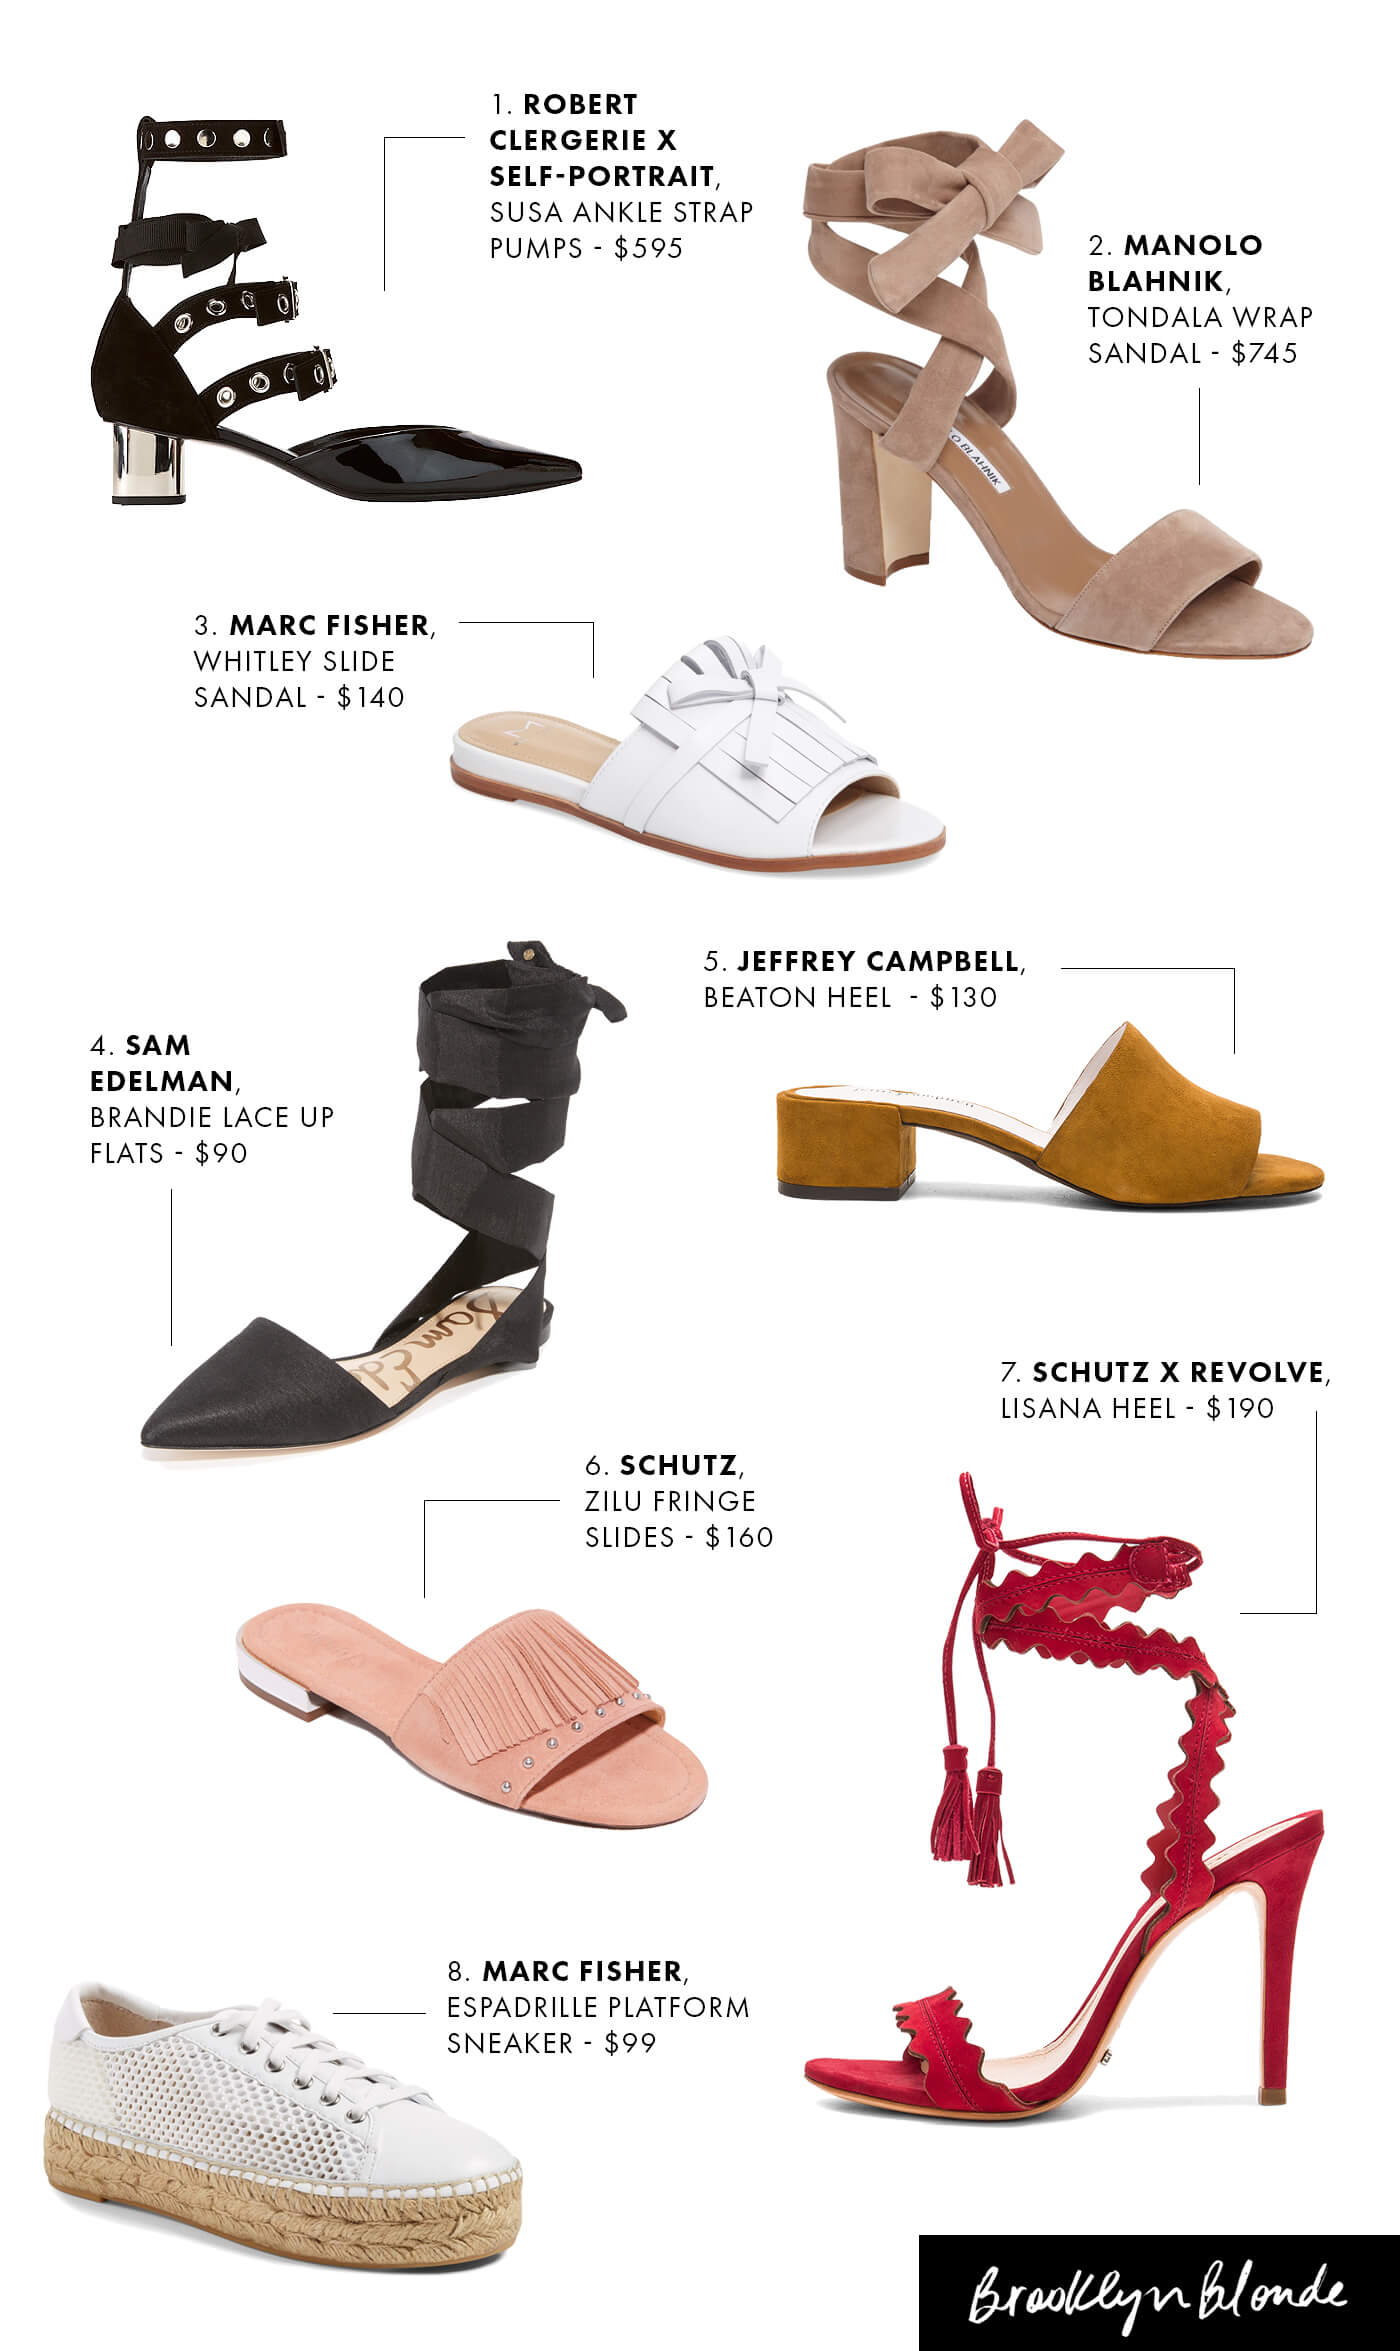 642afef7887b33 The Eight Most Stylish Shoes For Spring